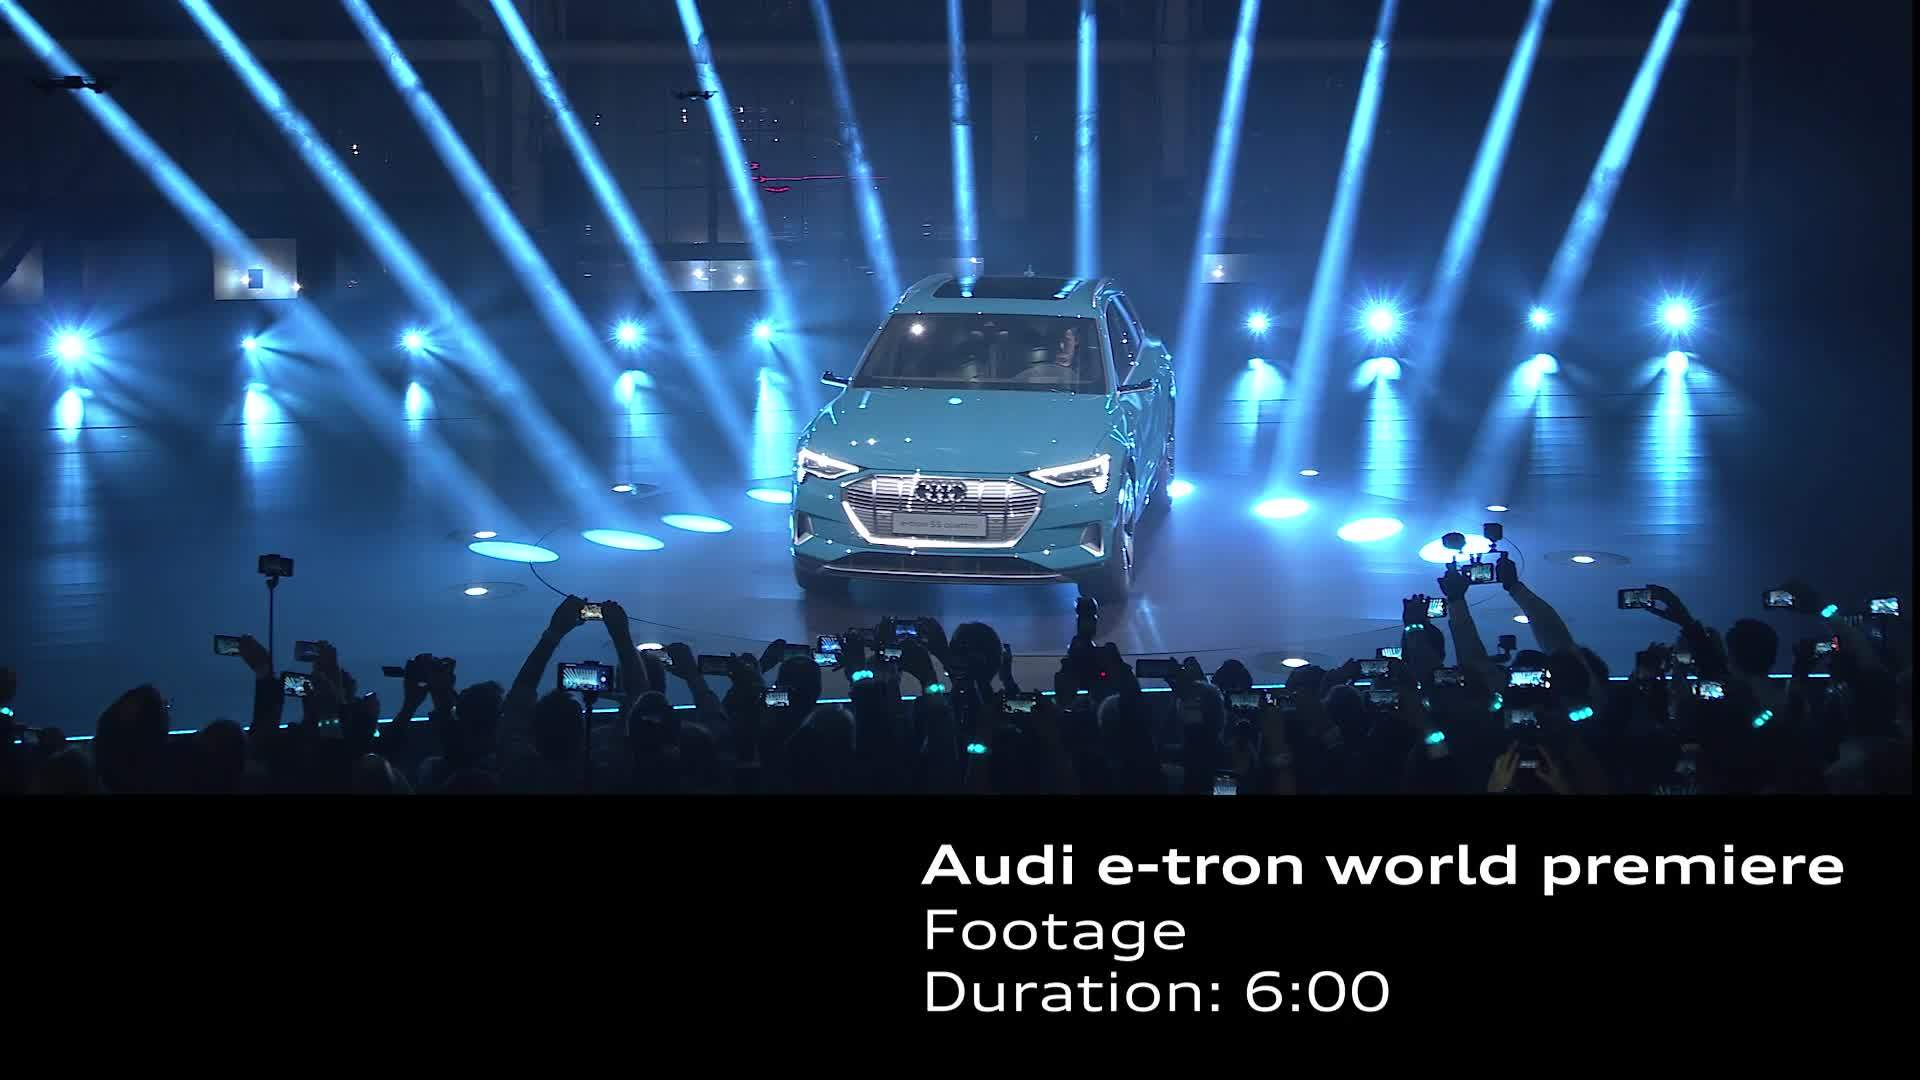 Audi e-tron Weltpremiere Footage Event und Location